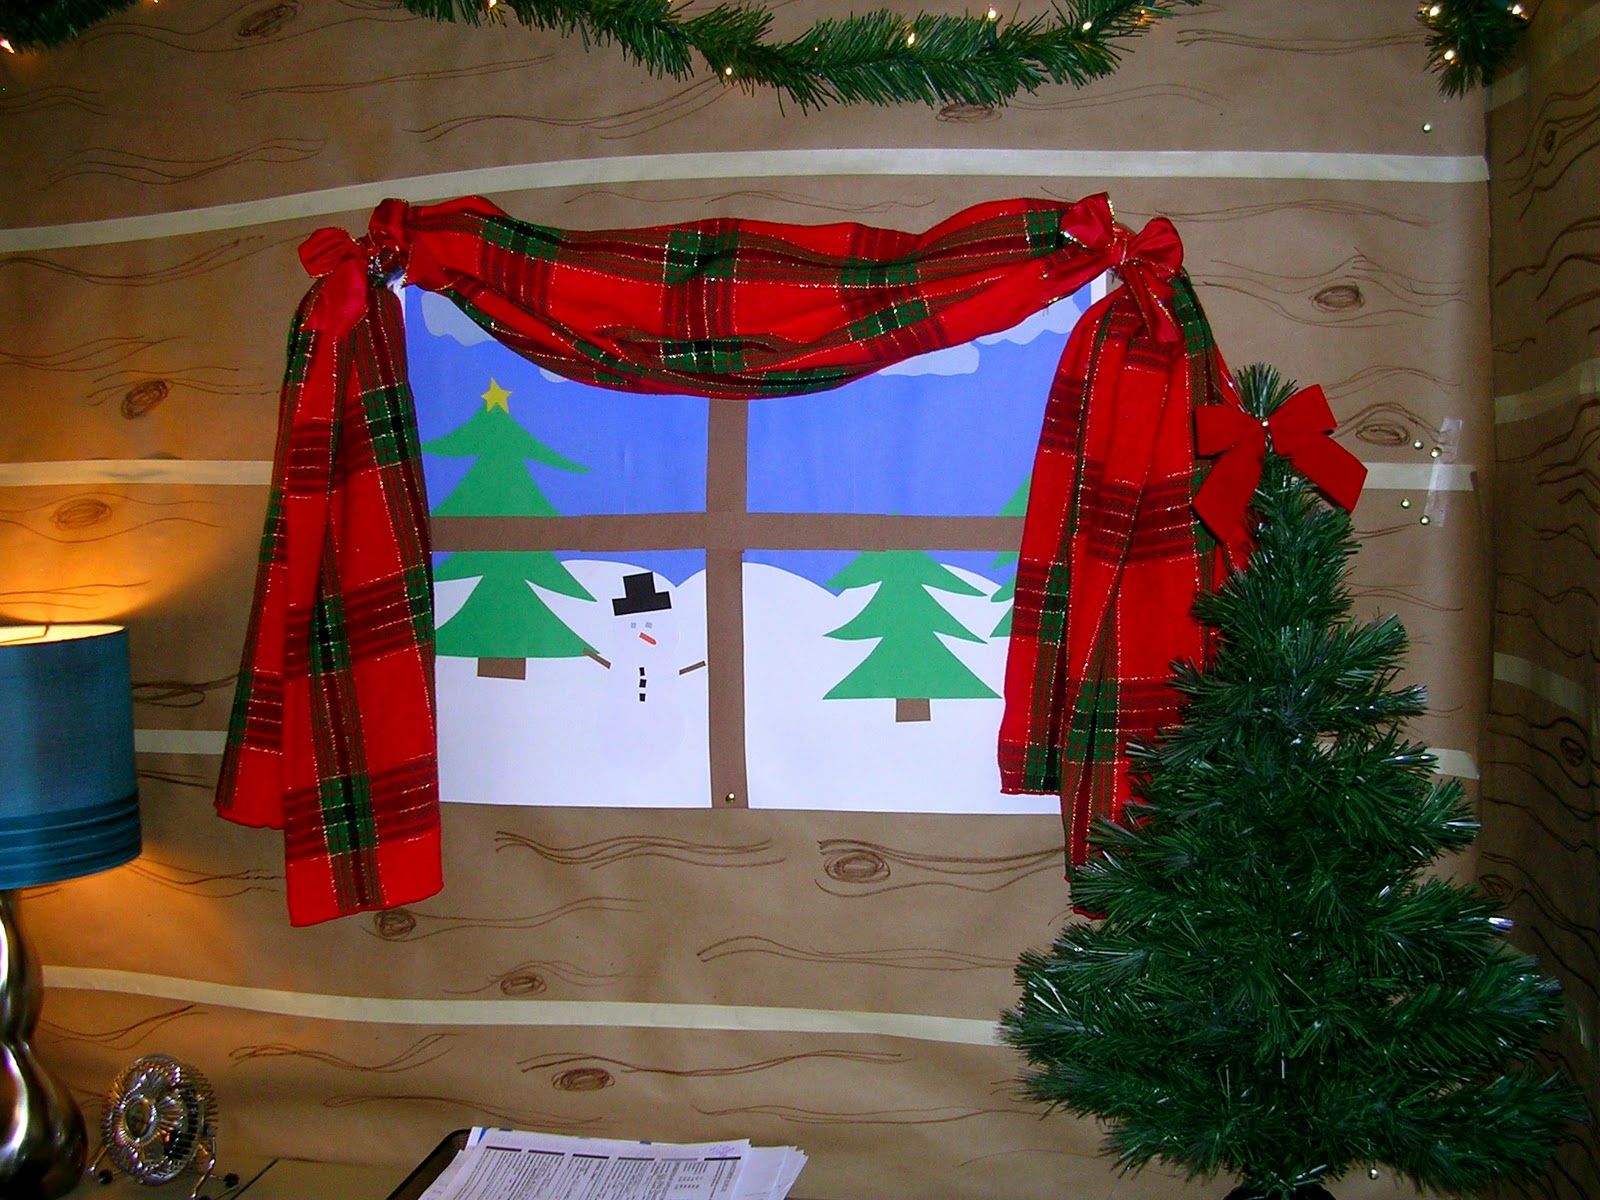 lovely office cubicle christmas decorating ideas | they call me socially awkward.: A Cubicle Christmas - Part 1